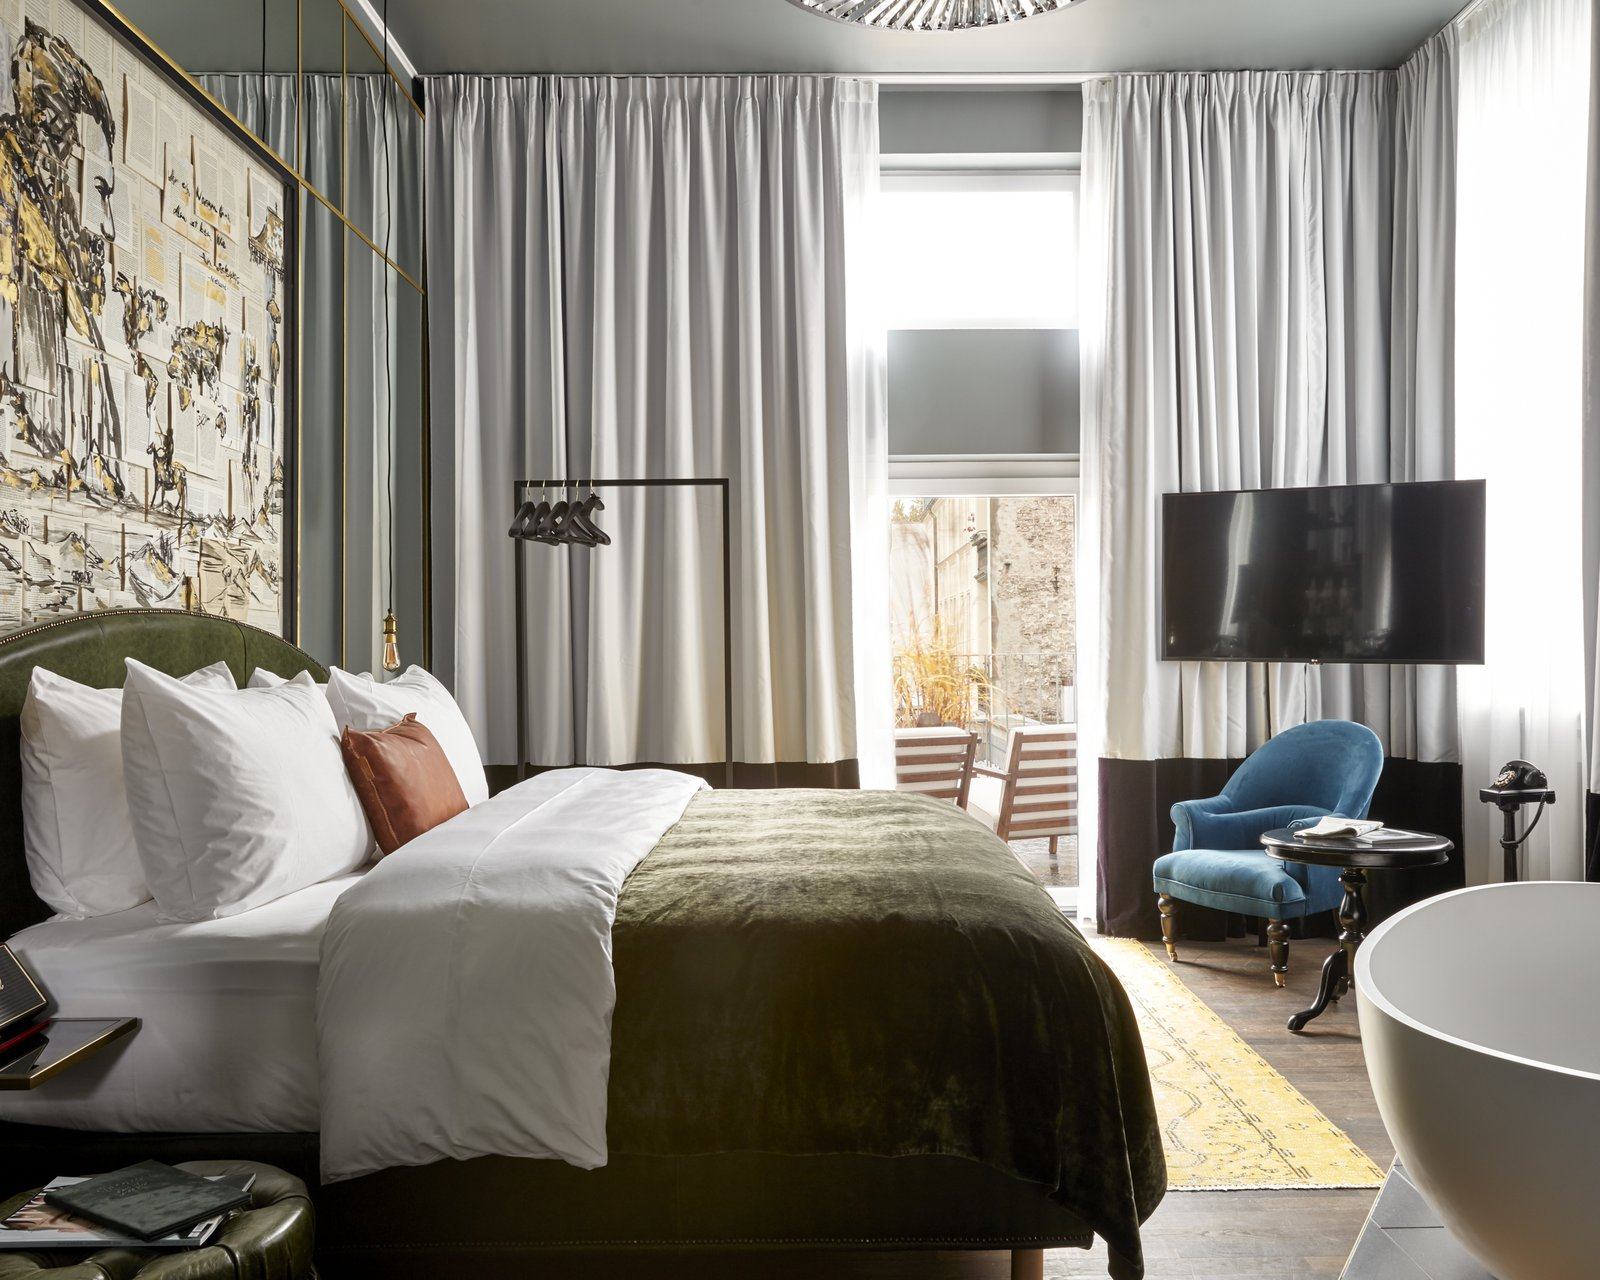 sir-savigny-berlin-room-suite (17).jpg